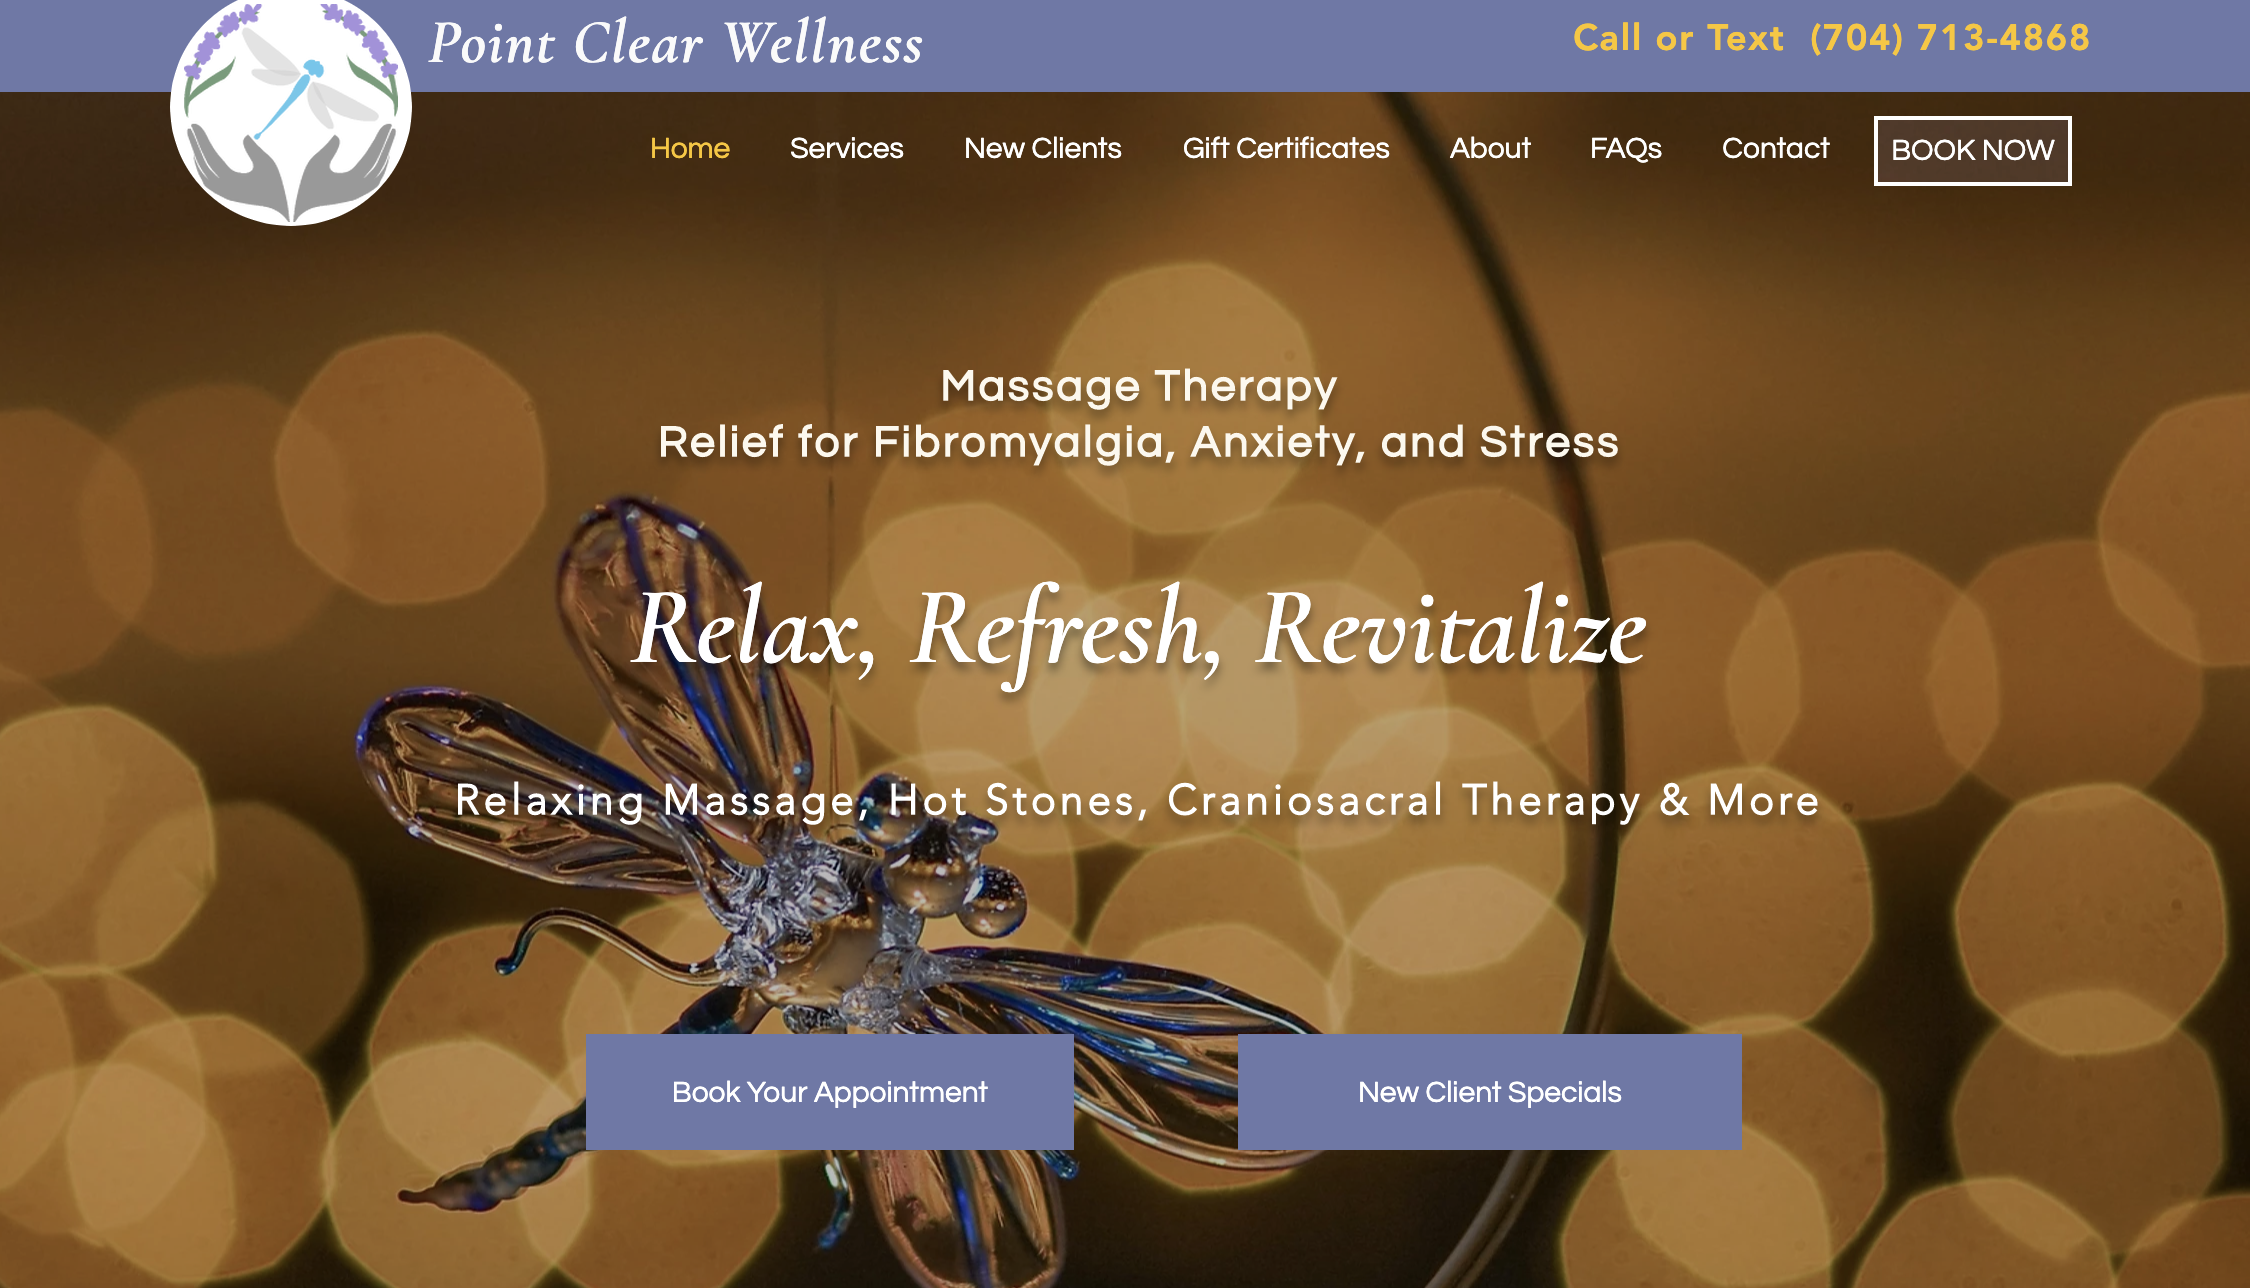 PointClearWellness.com